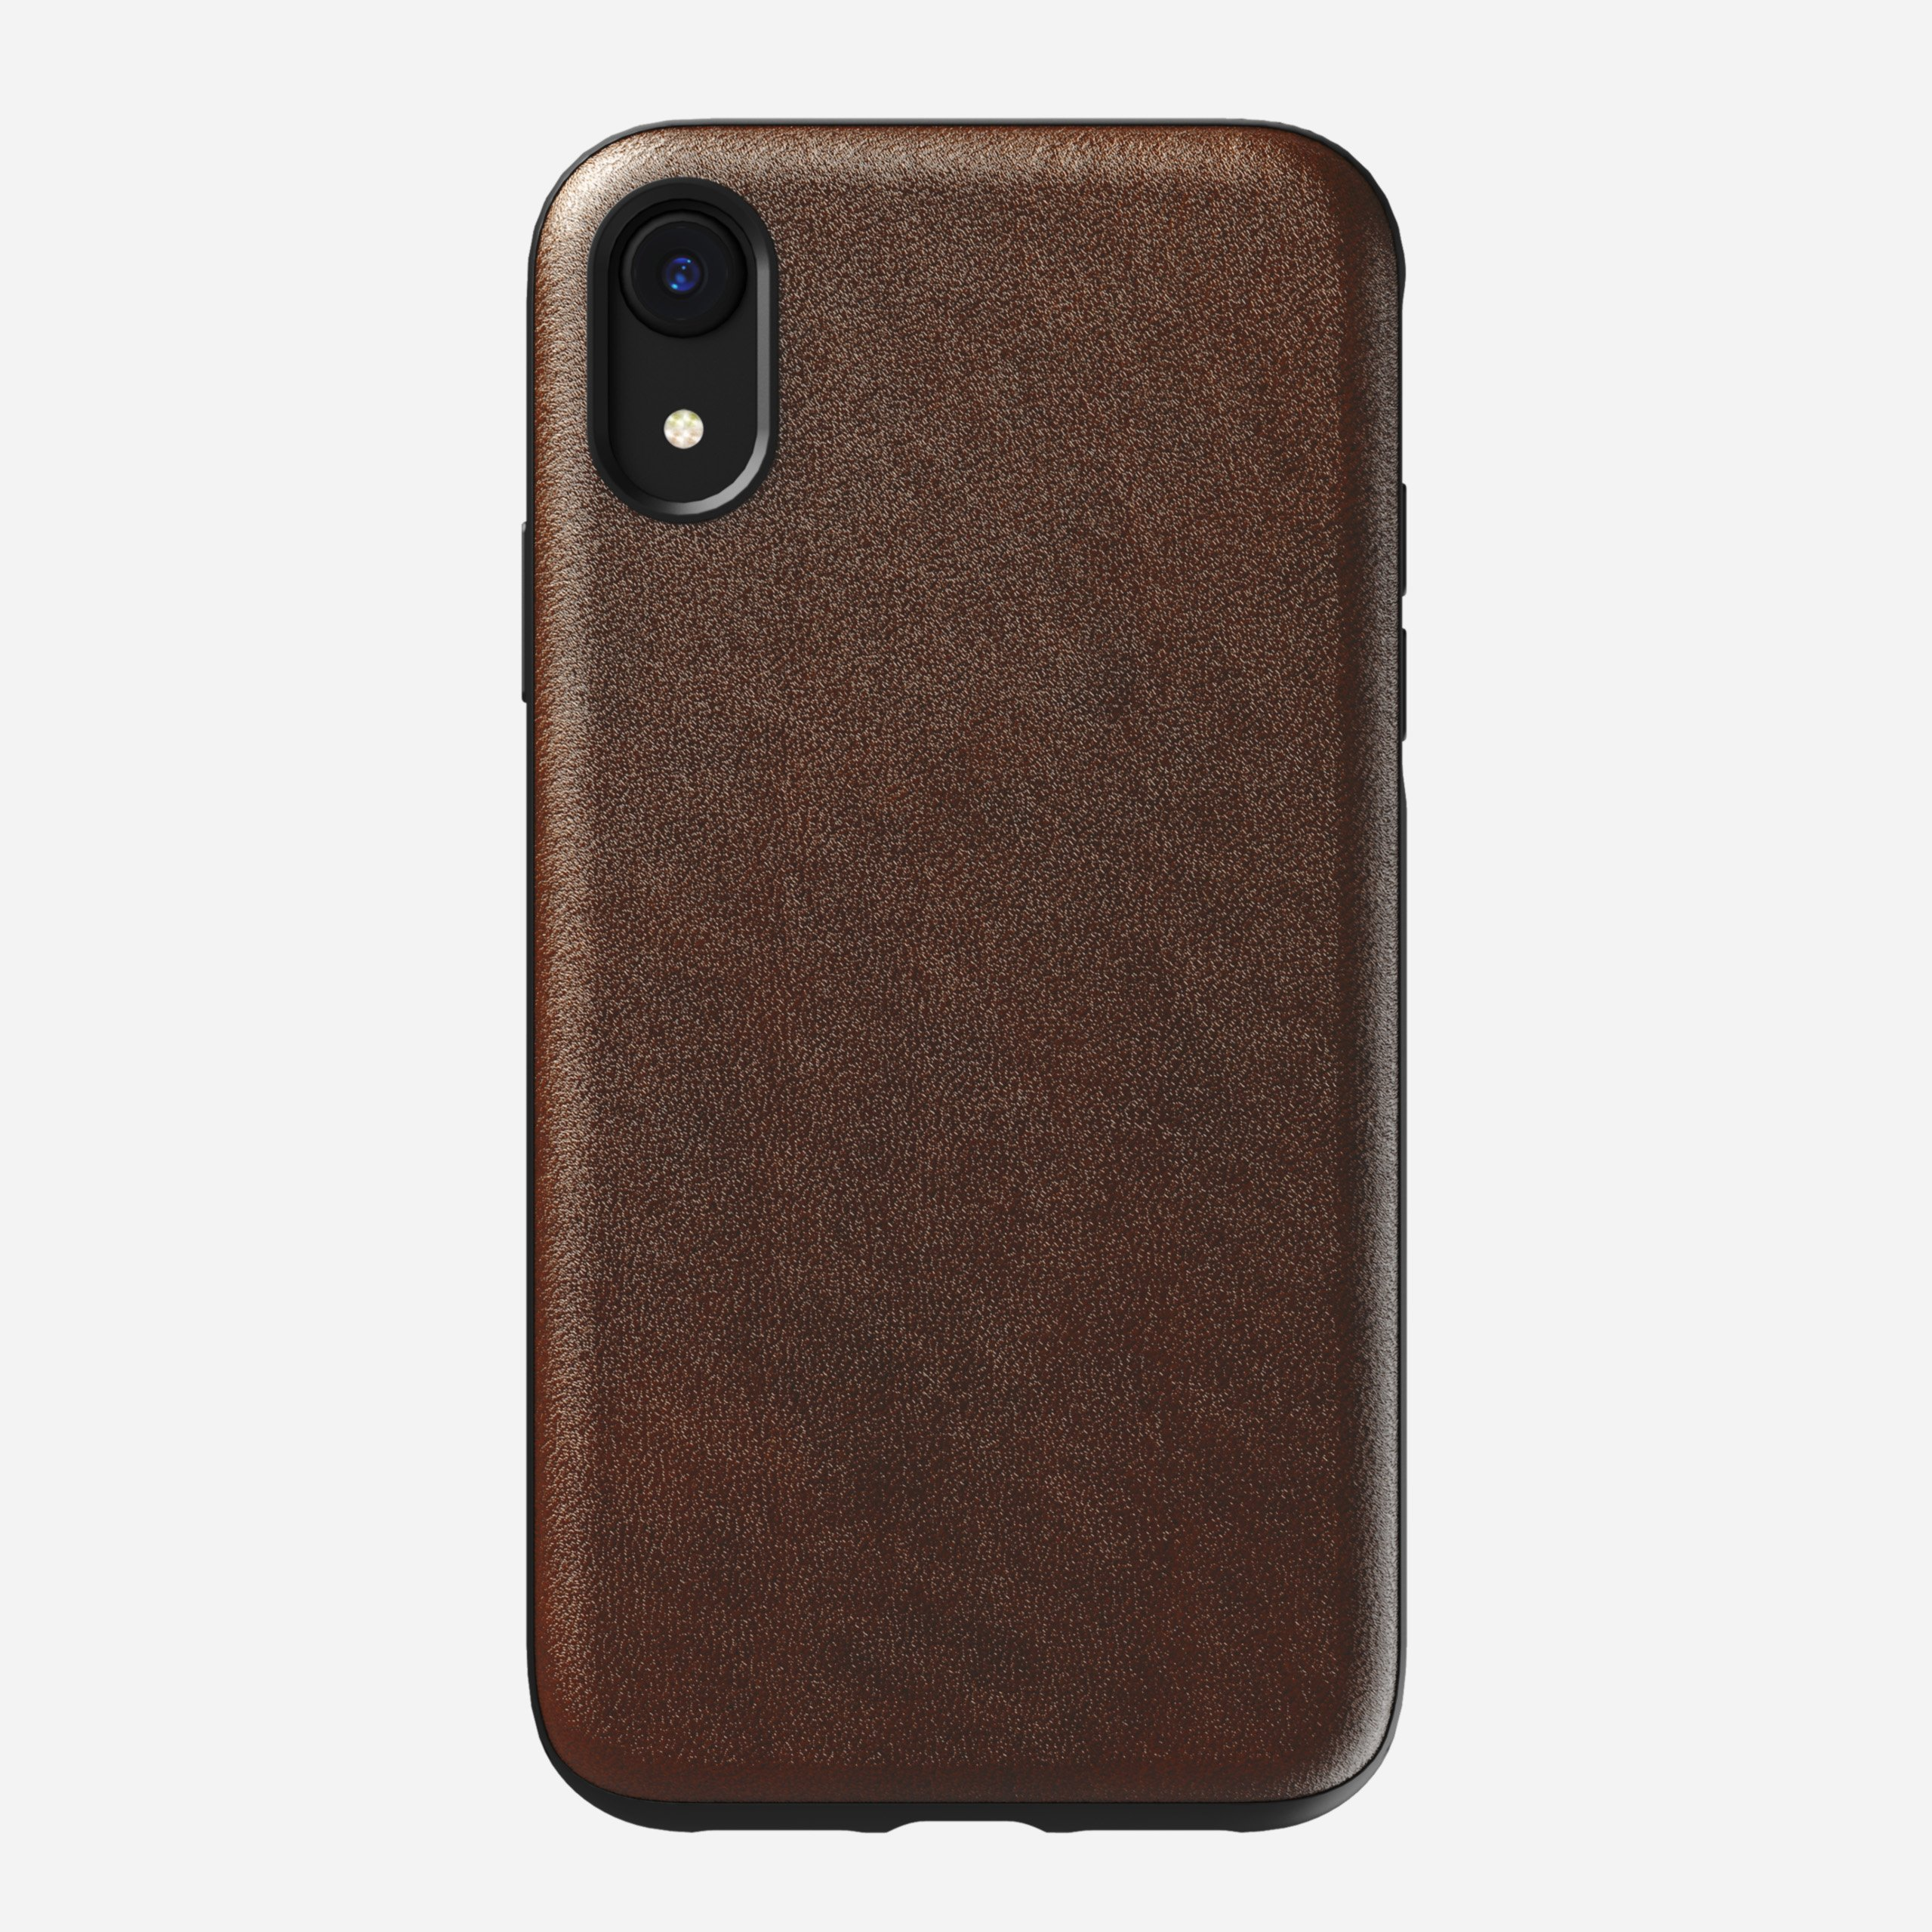 Rugged Leather Case for iPhone Xr, Brown